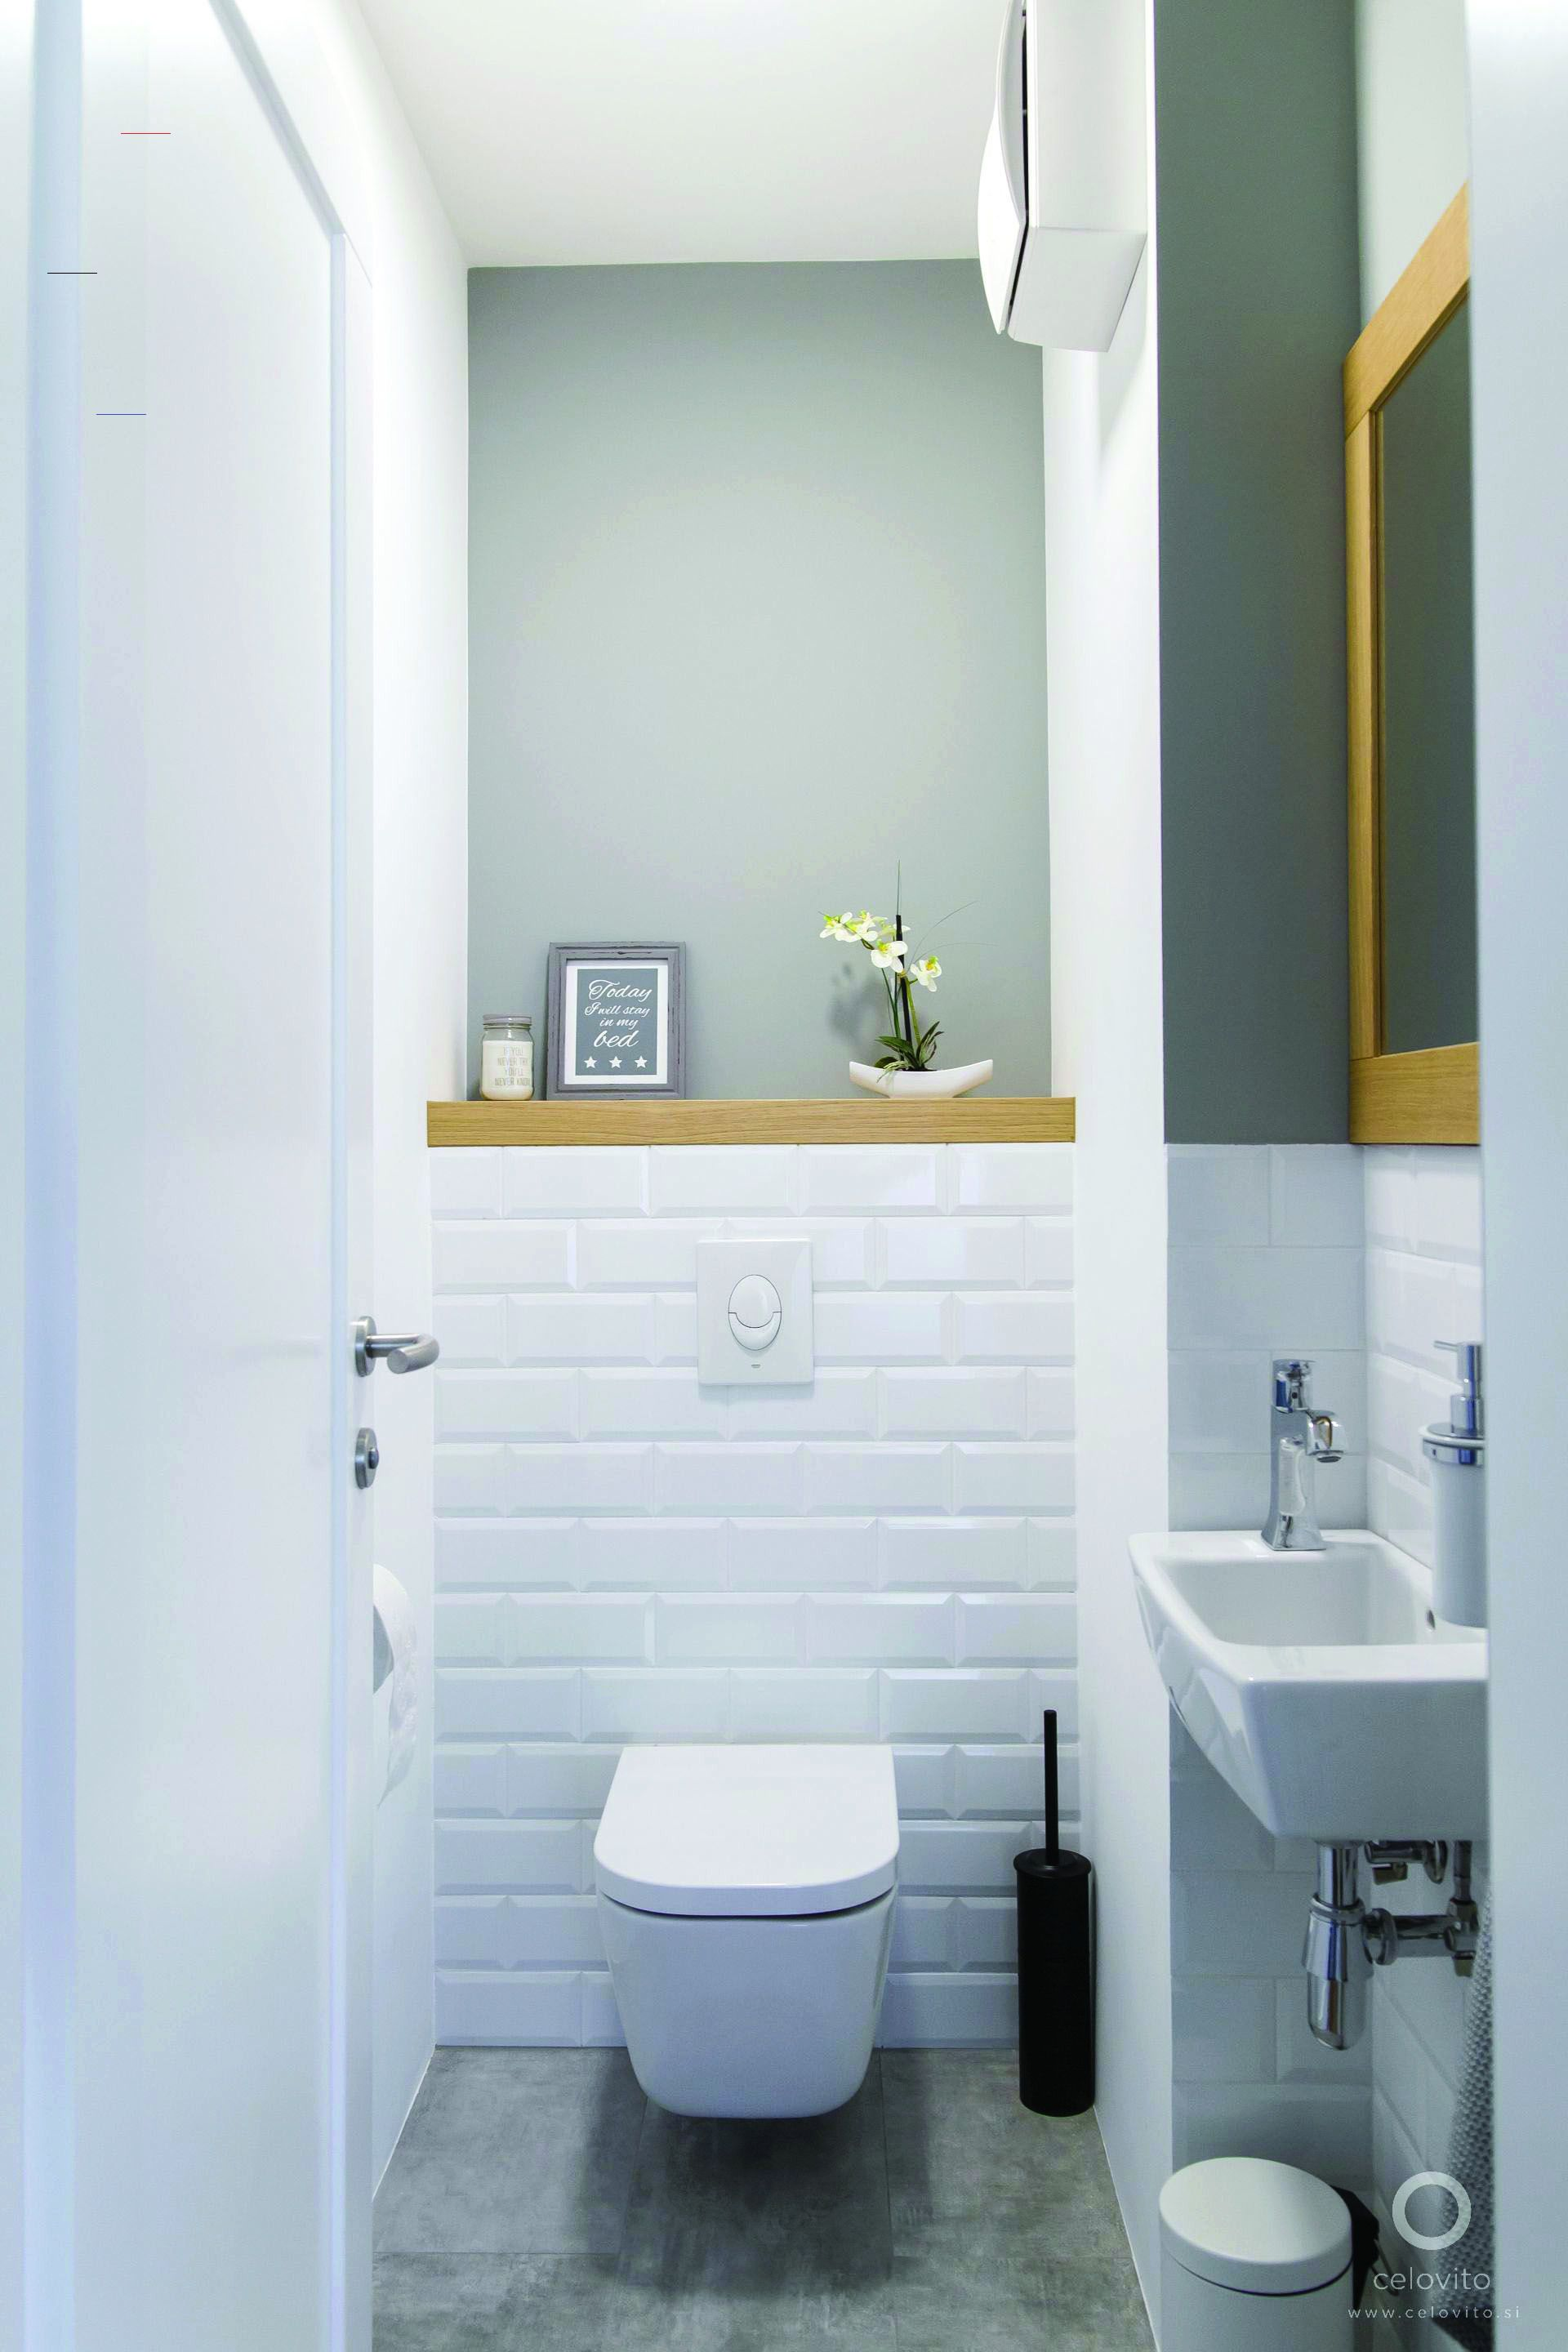 Pin By Orla Brady On Small Bathroom In 2020 Small Toilet Room Small Downstairs Toilet Toilet Design